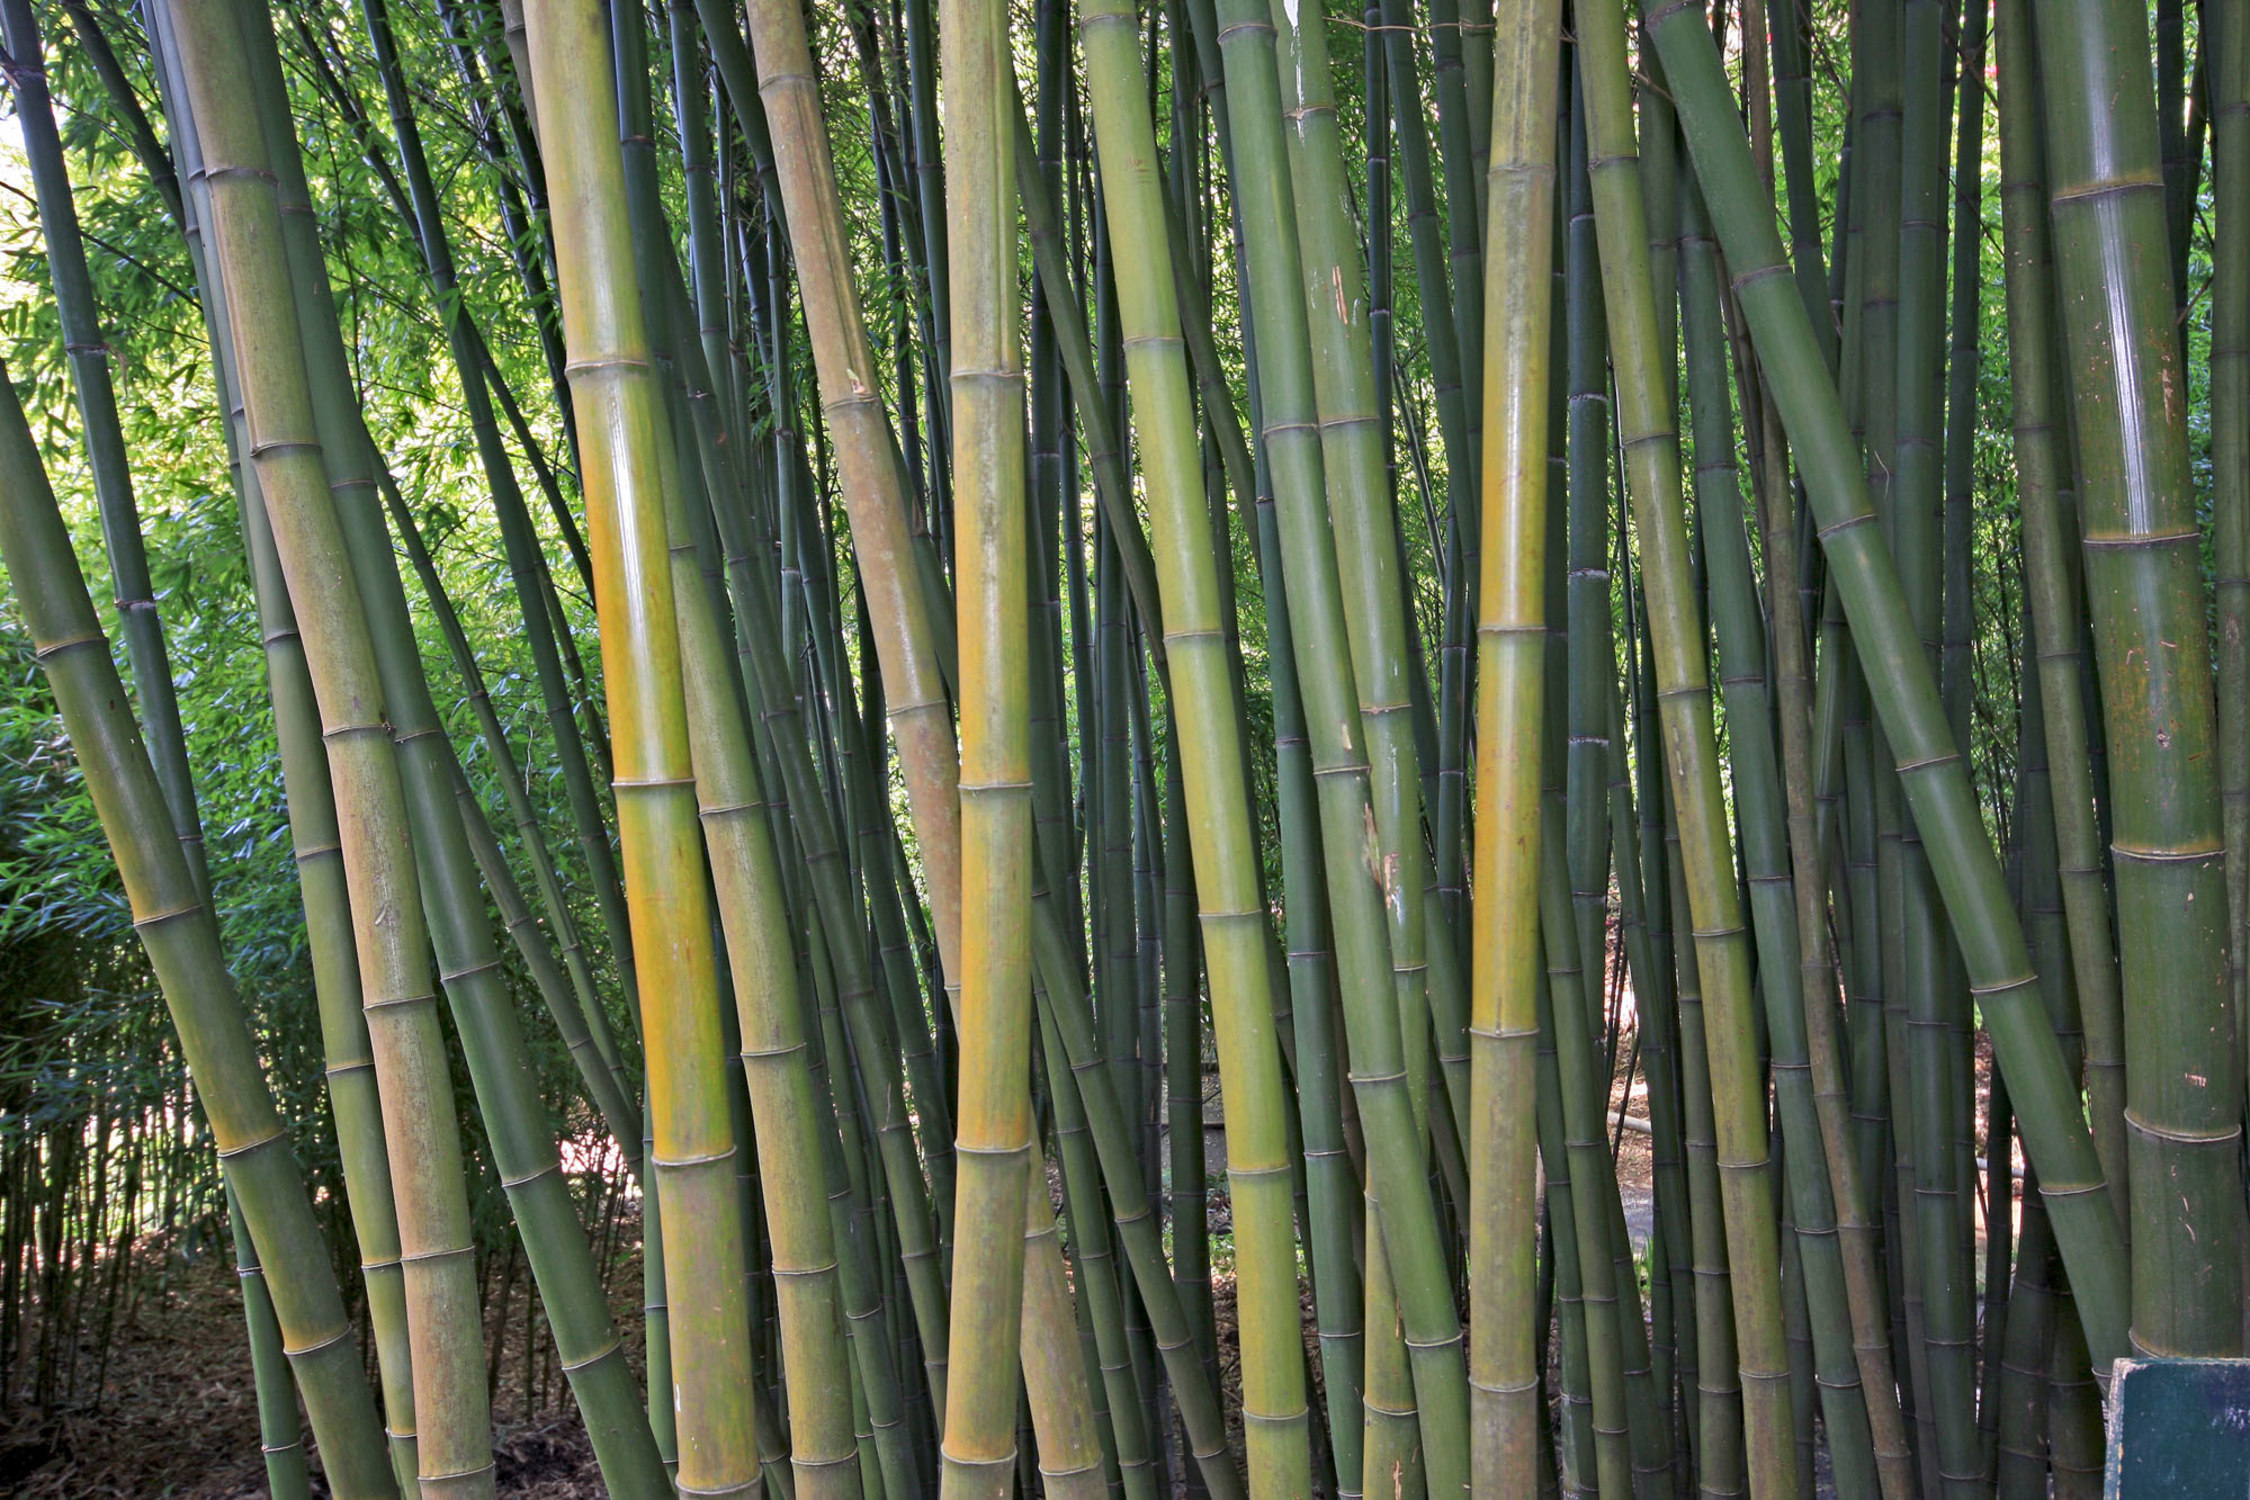 A Beast of a Bamboo